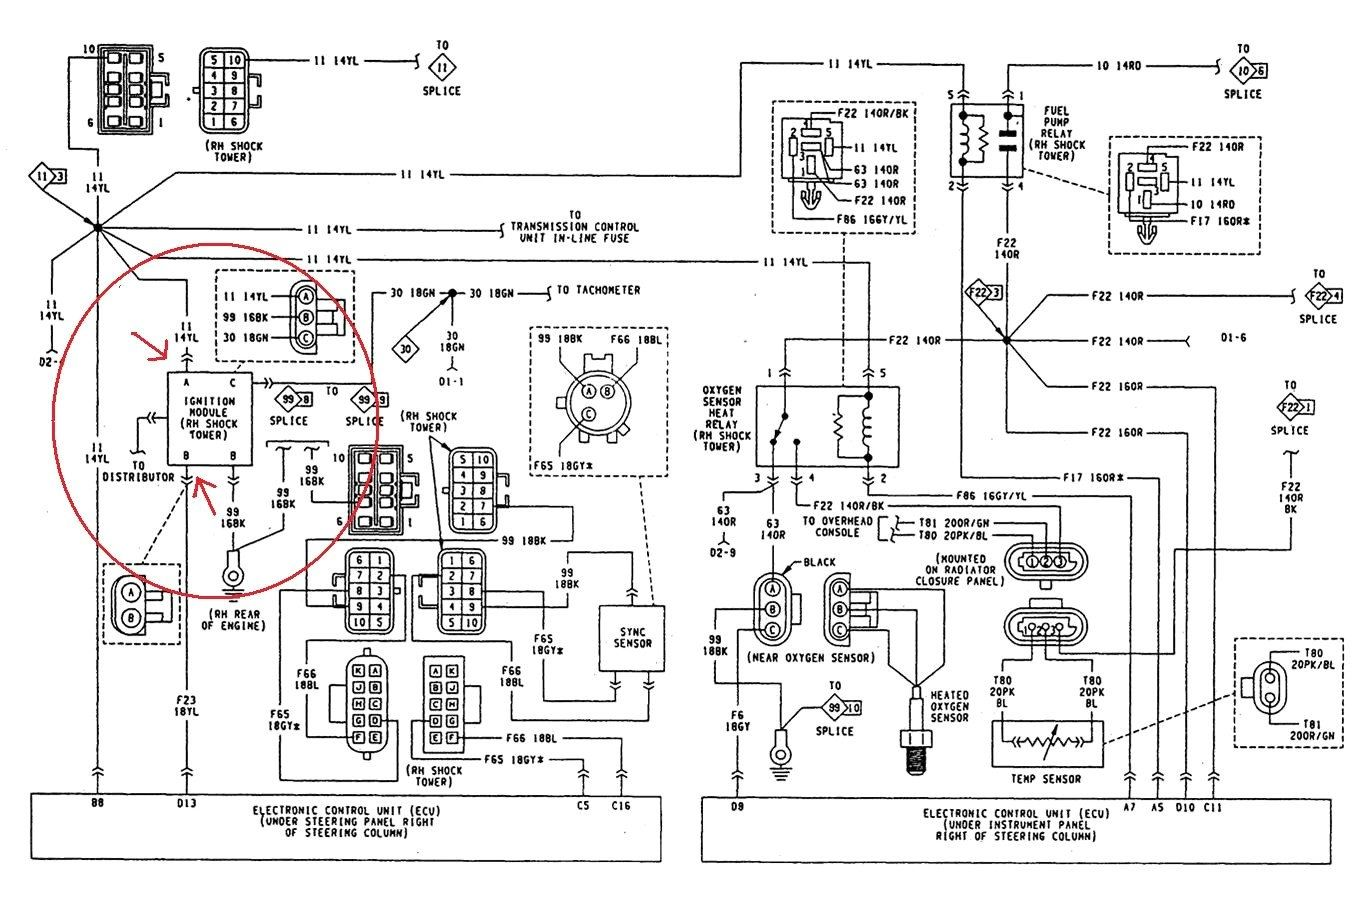 hight resolution of 1990 jeep yj vacuum diagram wiring diagram name 1990 jeep cherokee vacuum diagram 1990 jeep vacuum diagram